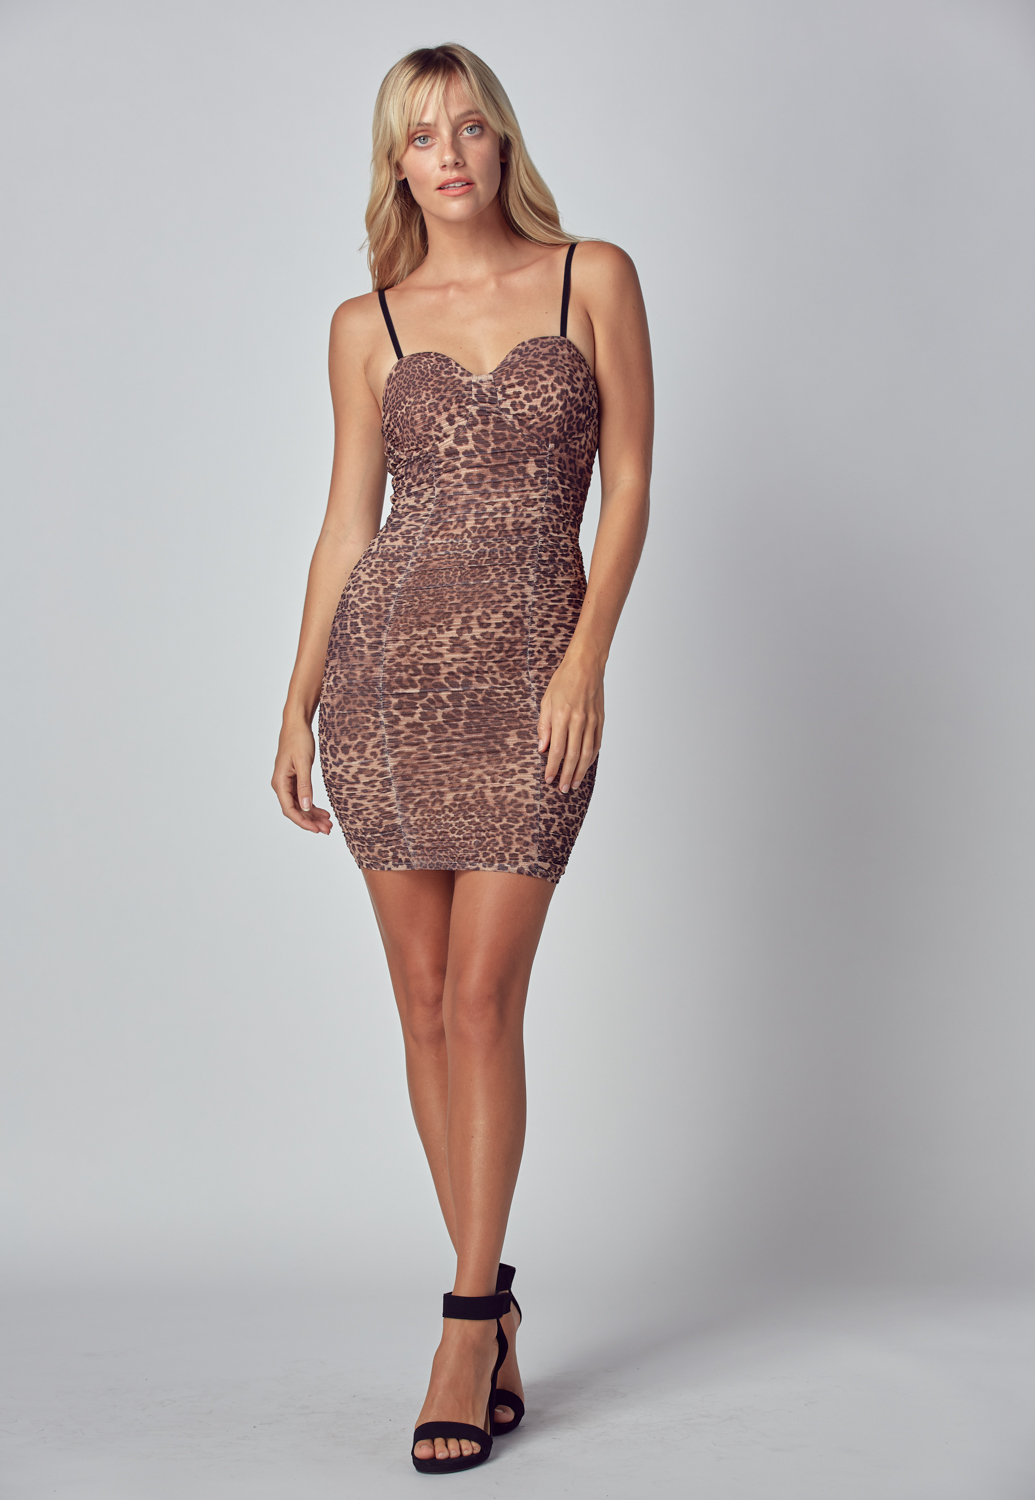 Ruched Leopard Print Bodycon Dress